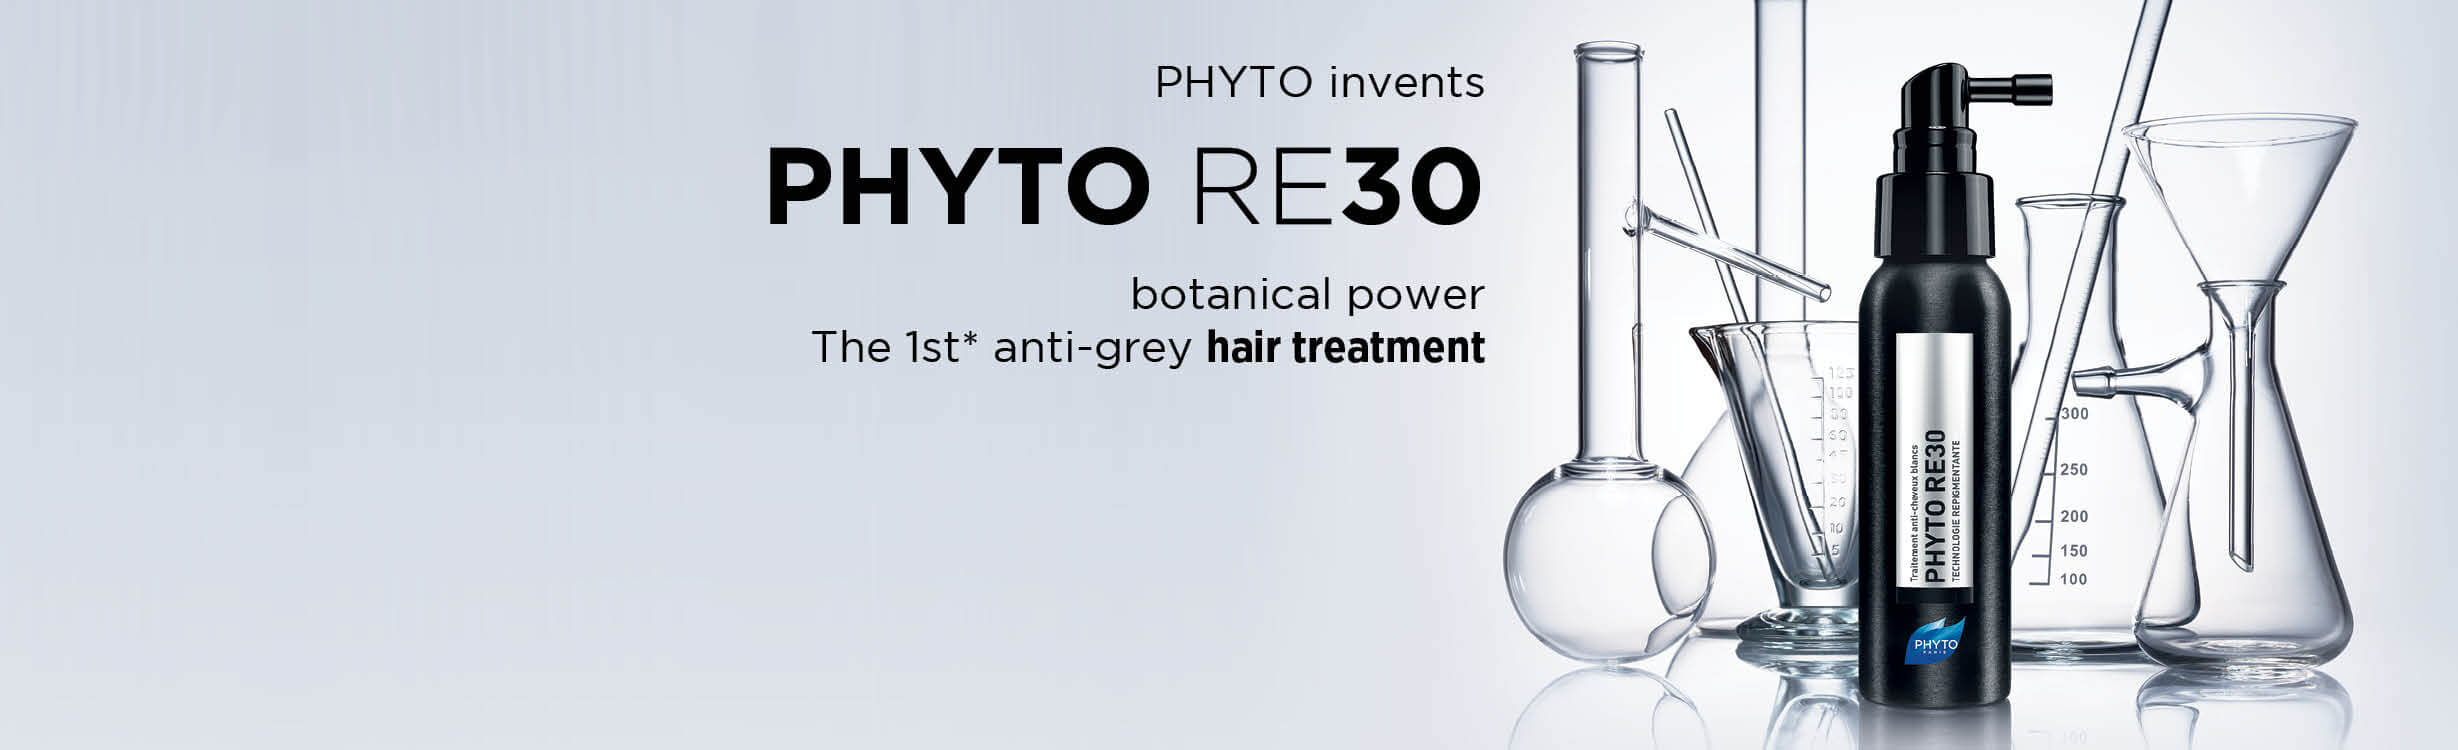 /brands/phyto/all-phyto.list